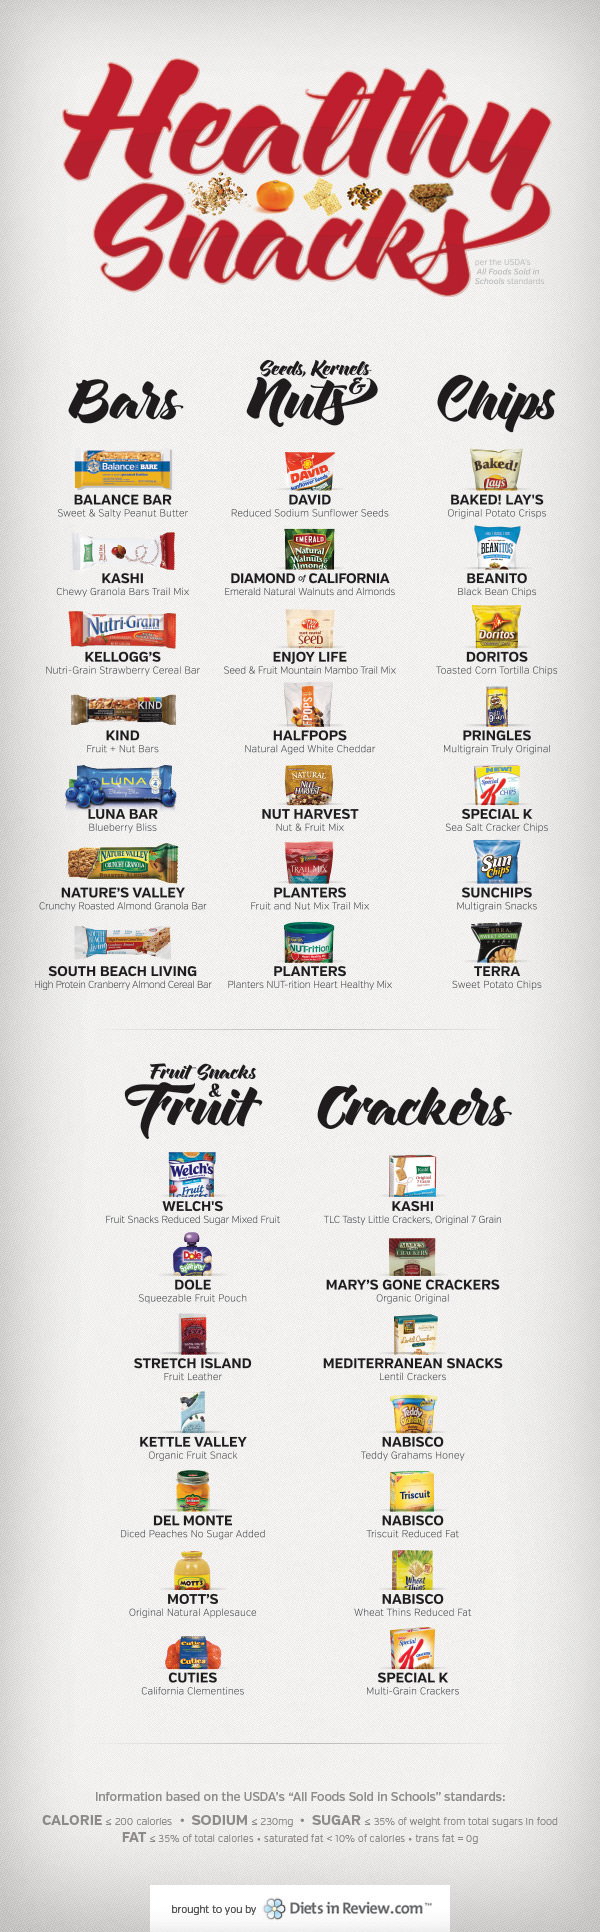 healthy snacks usda guidelines